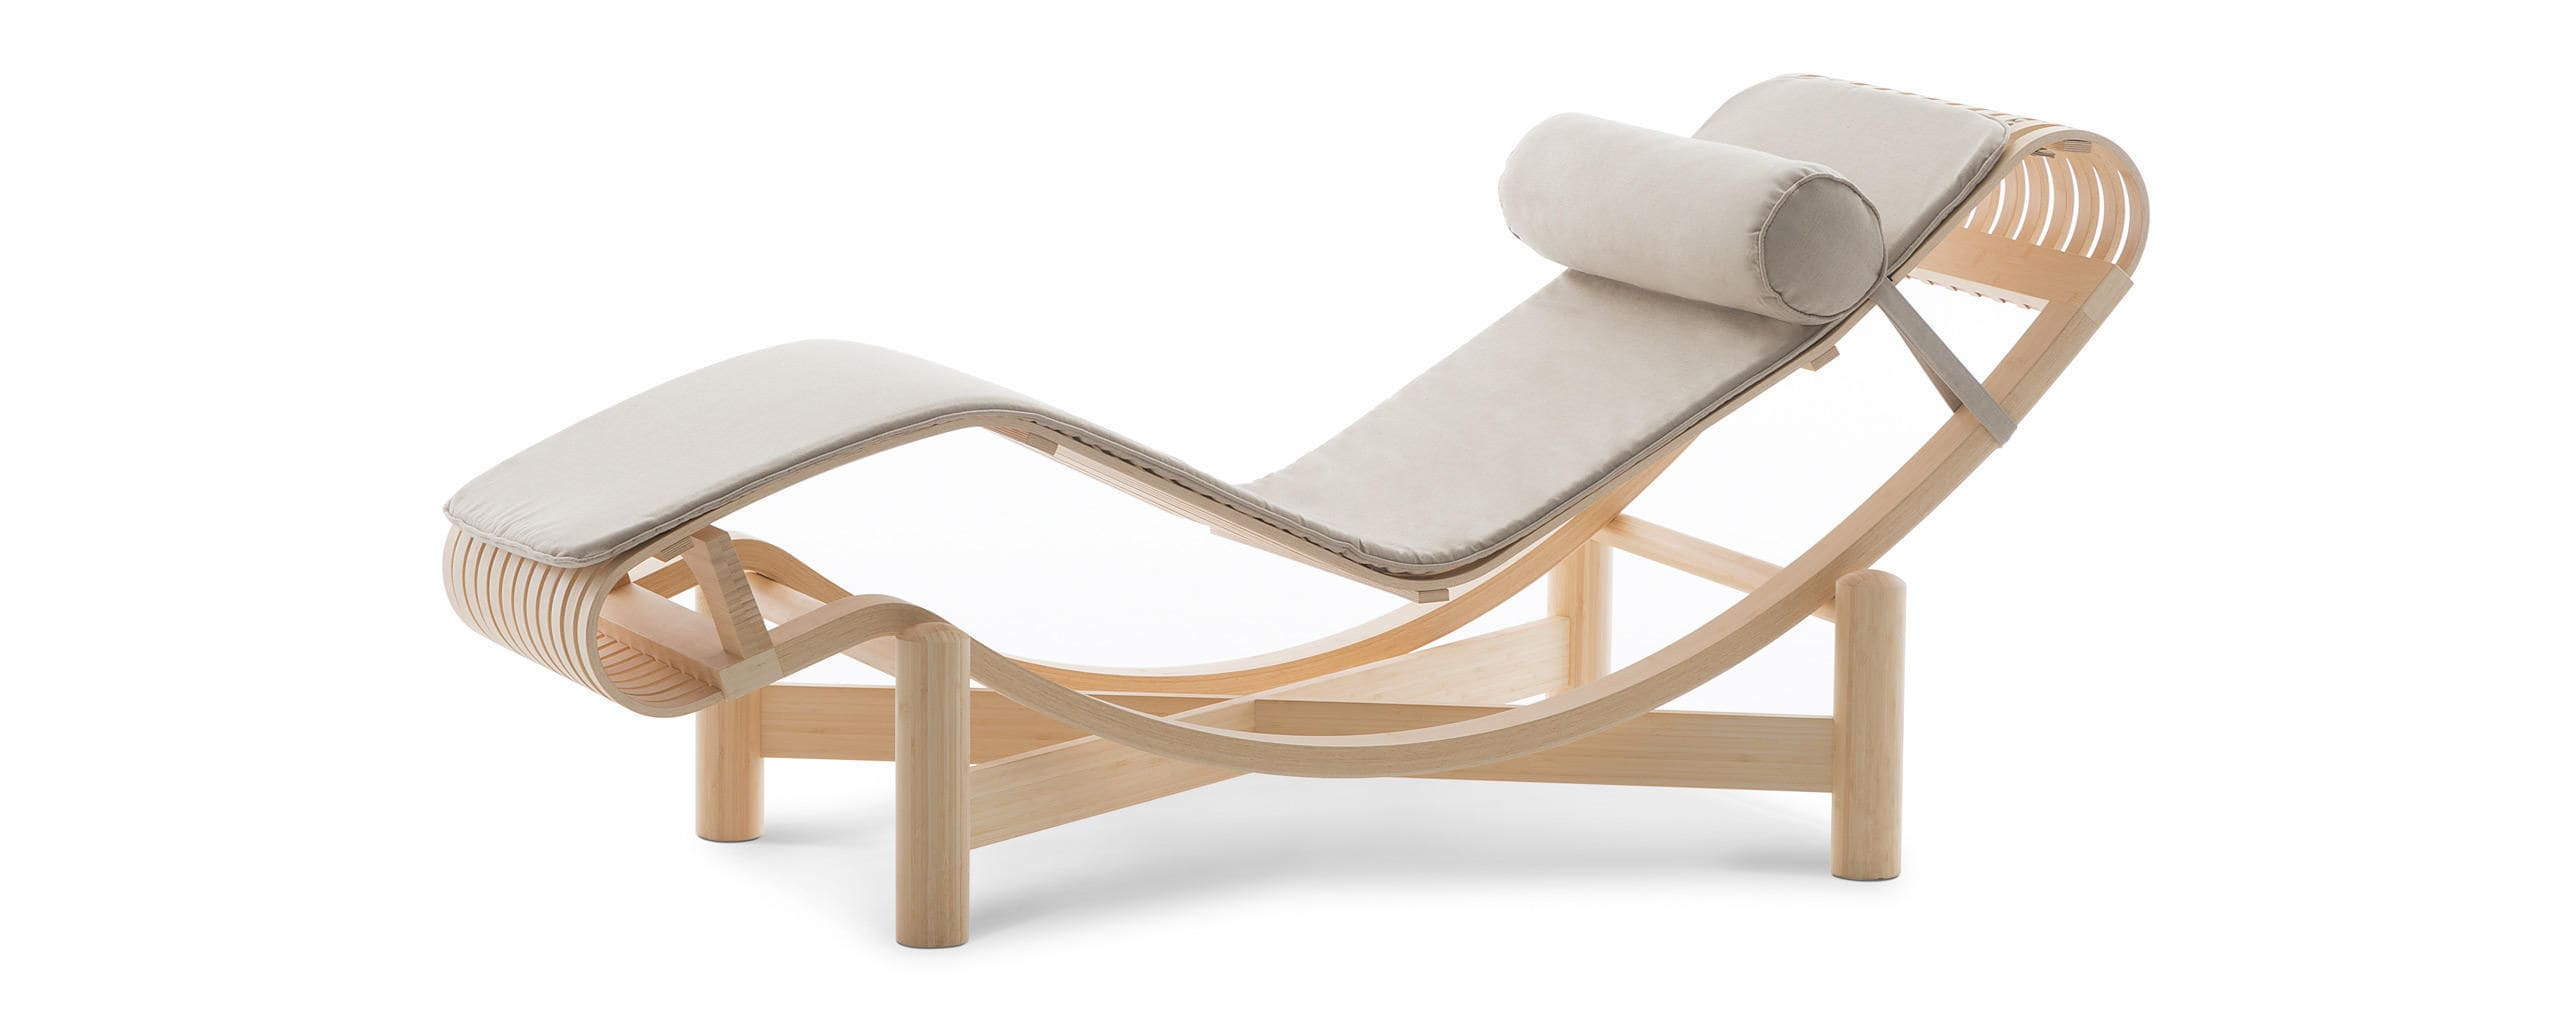 Contemporary chaise longue / wooden / indoor / outdoor - 522 TOKYO ...